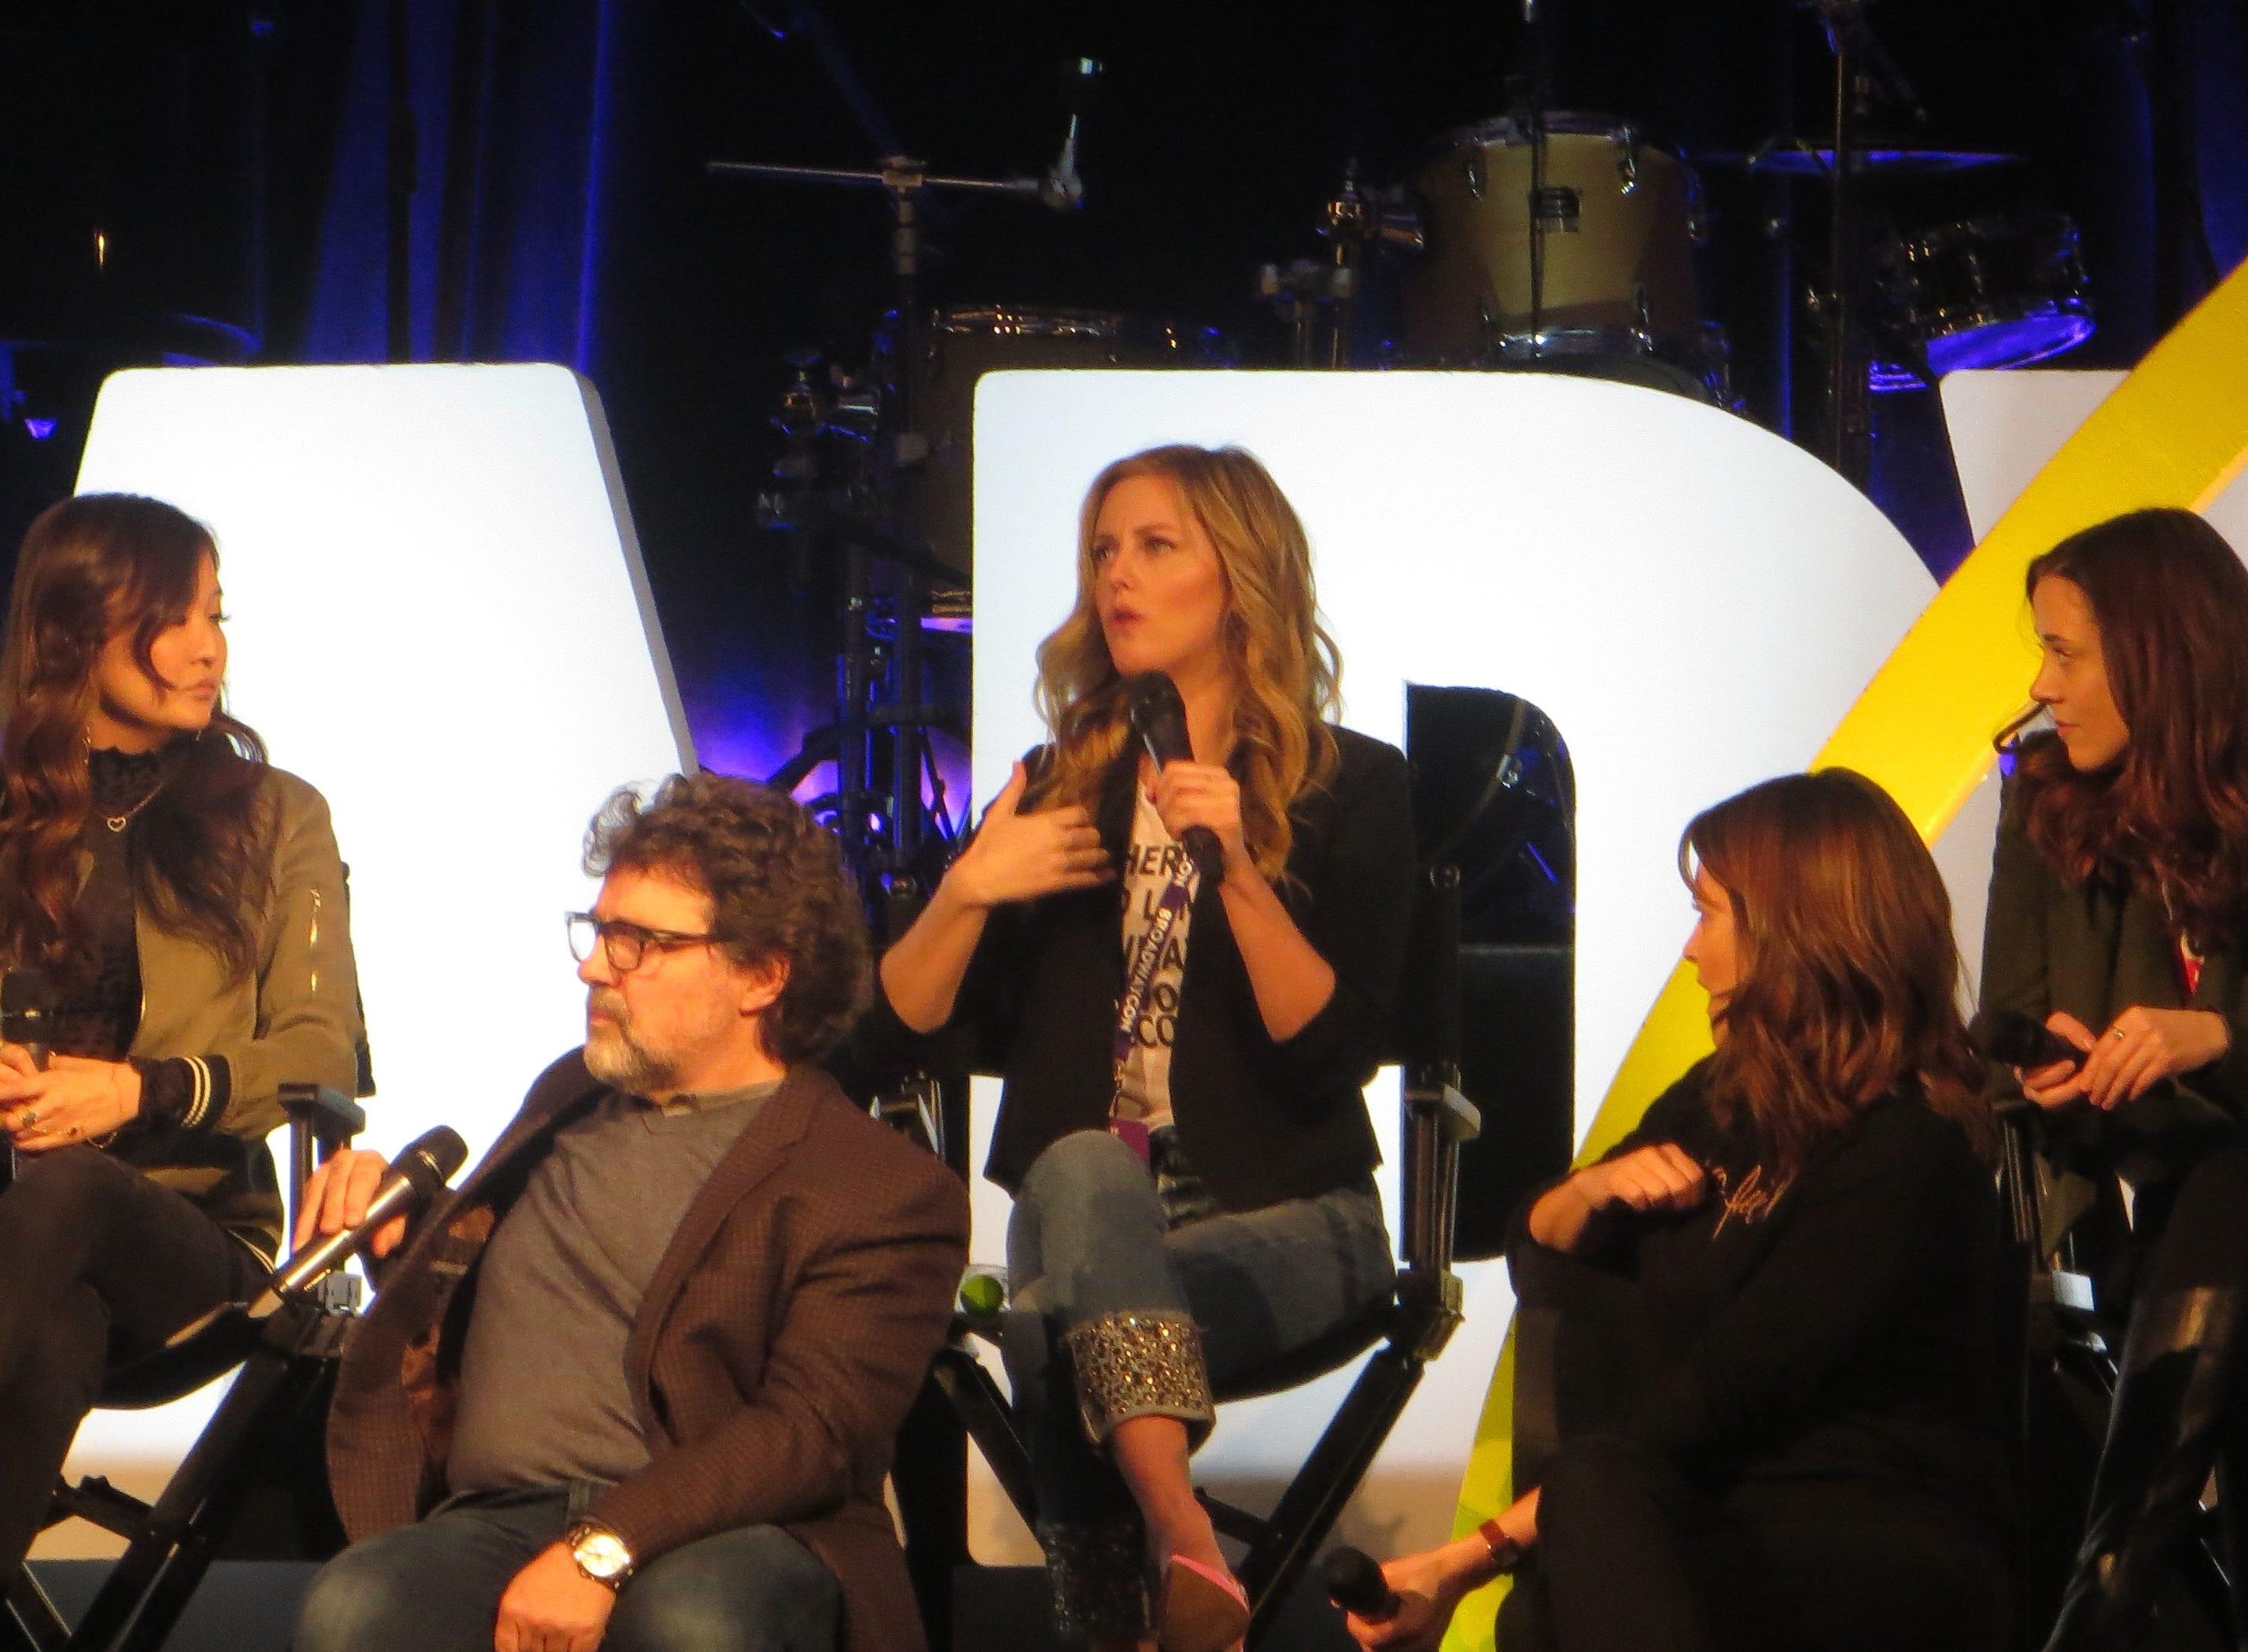 """A spotlight on """"Mean Girls"""" at BroadwayCon 2019, held Jan. 11 to 13, 2019, at the New York Hilton Midtown in Manhattan."""